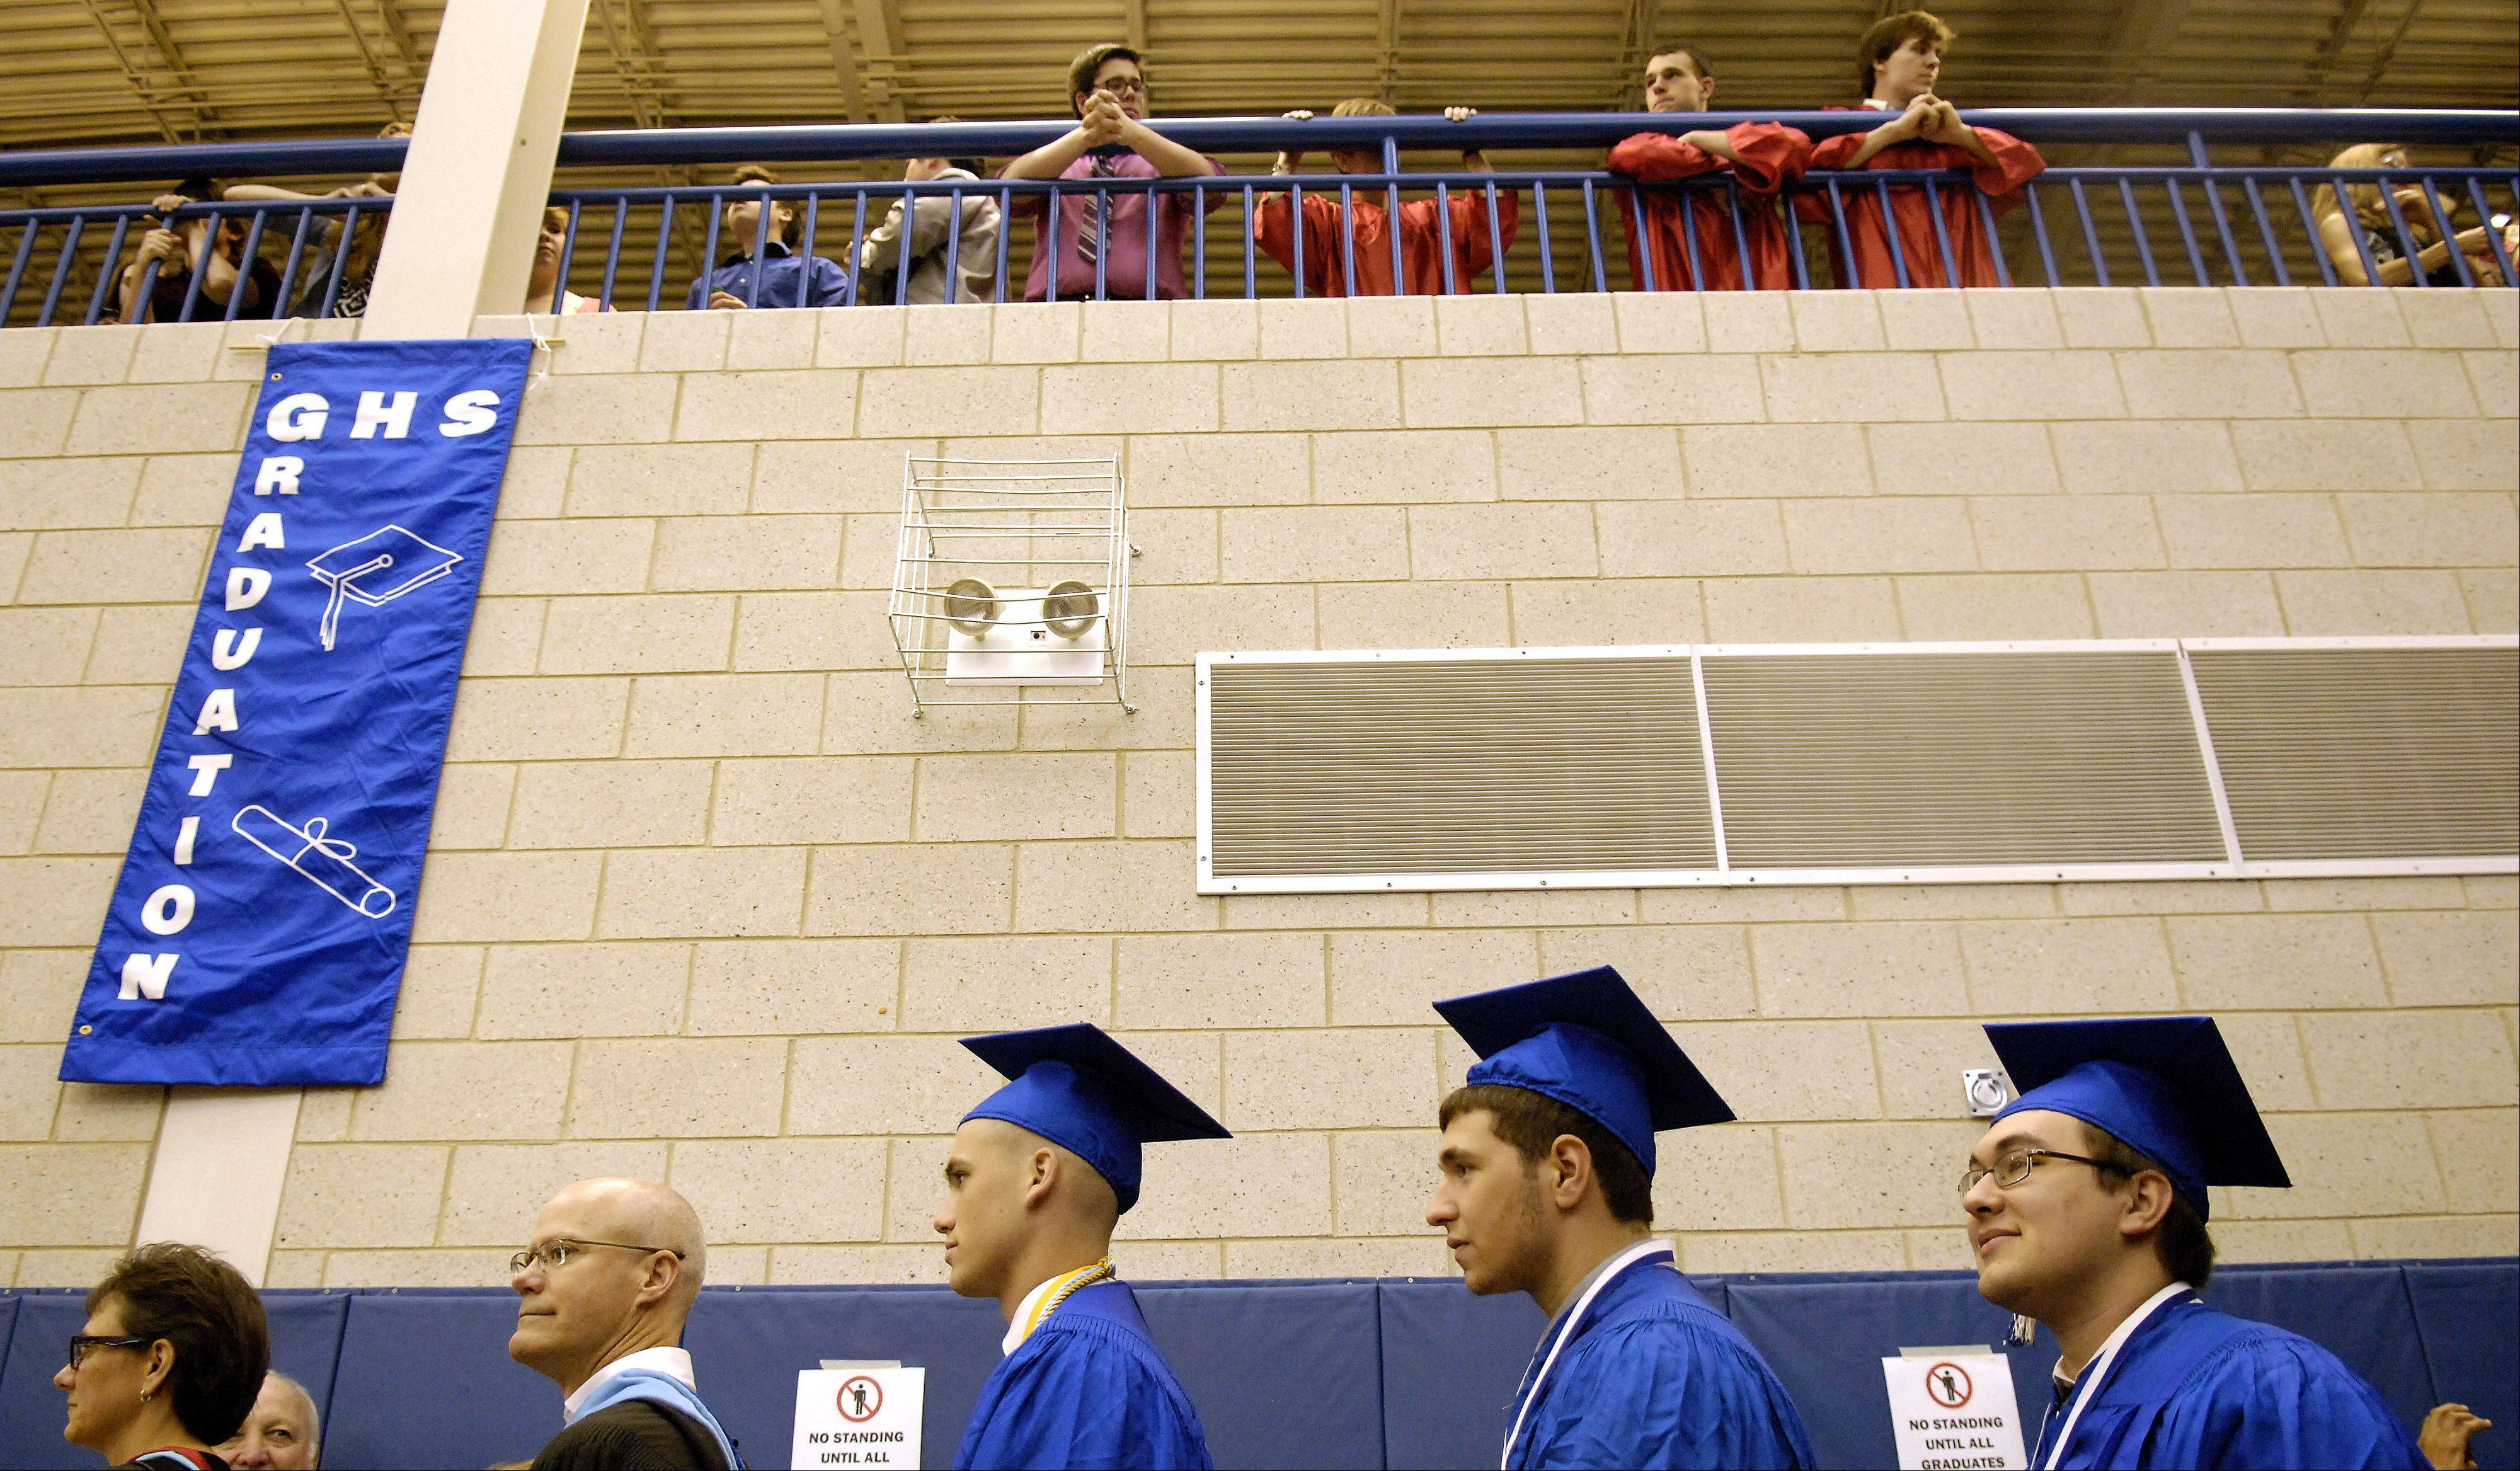 The 2013 senior class files in to the gym to start Geneva High School's commencement ceremony Sunday.